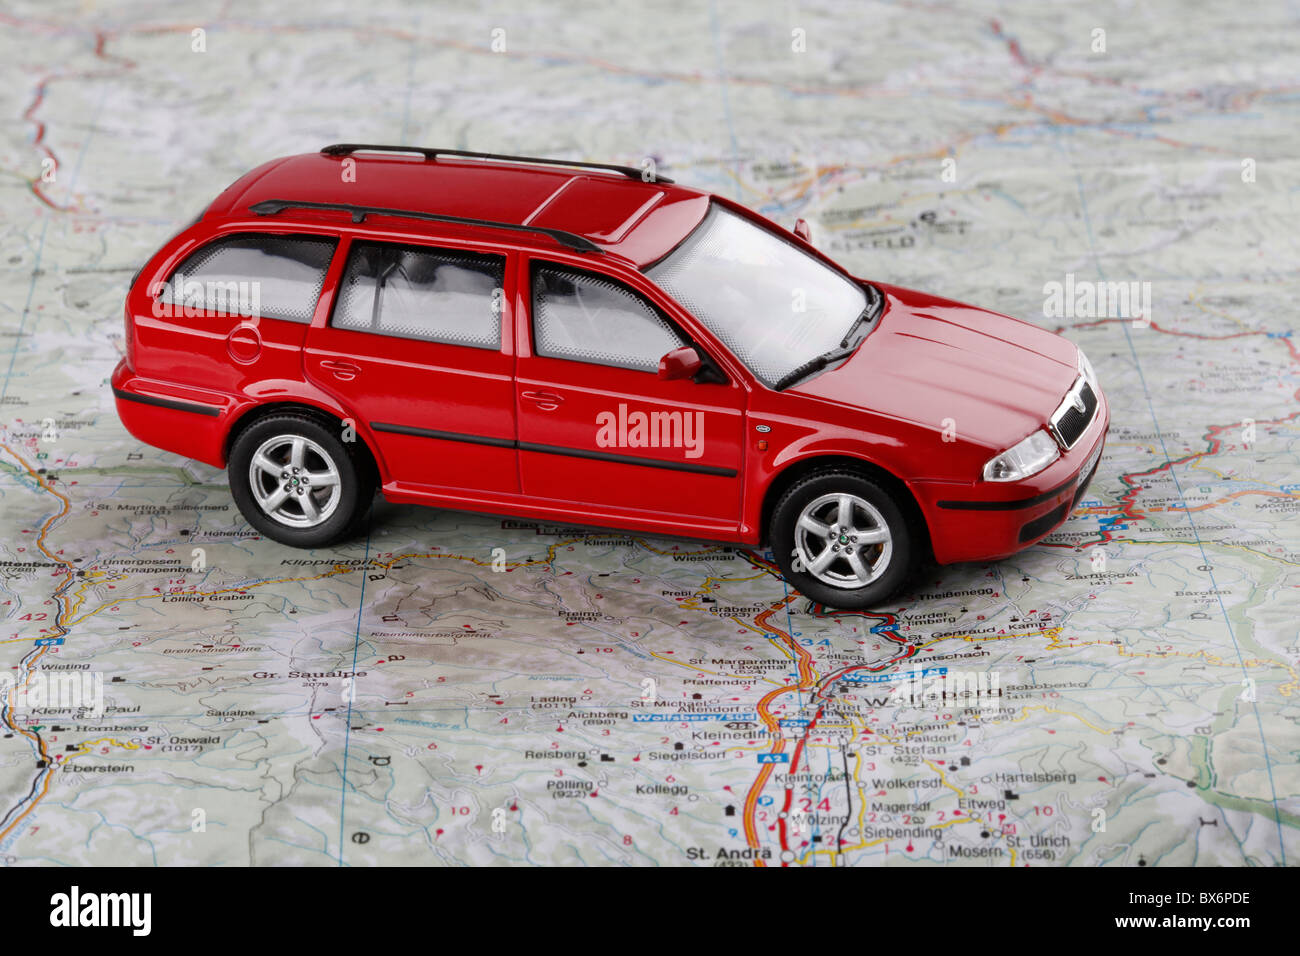 Travelling expenses. A car, model, Skoda Octavia Combi, map. (CTK Photo/Martin Sterba) - Stock Image